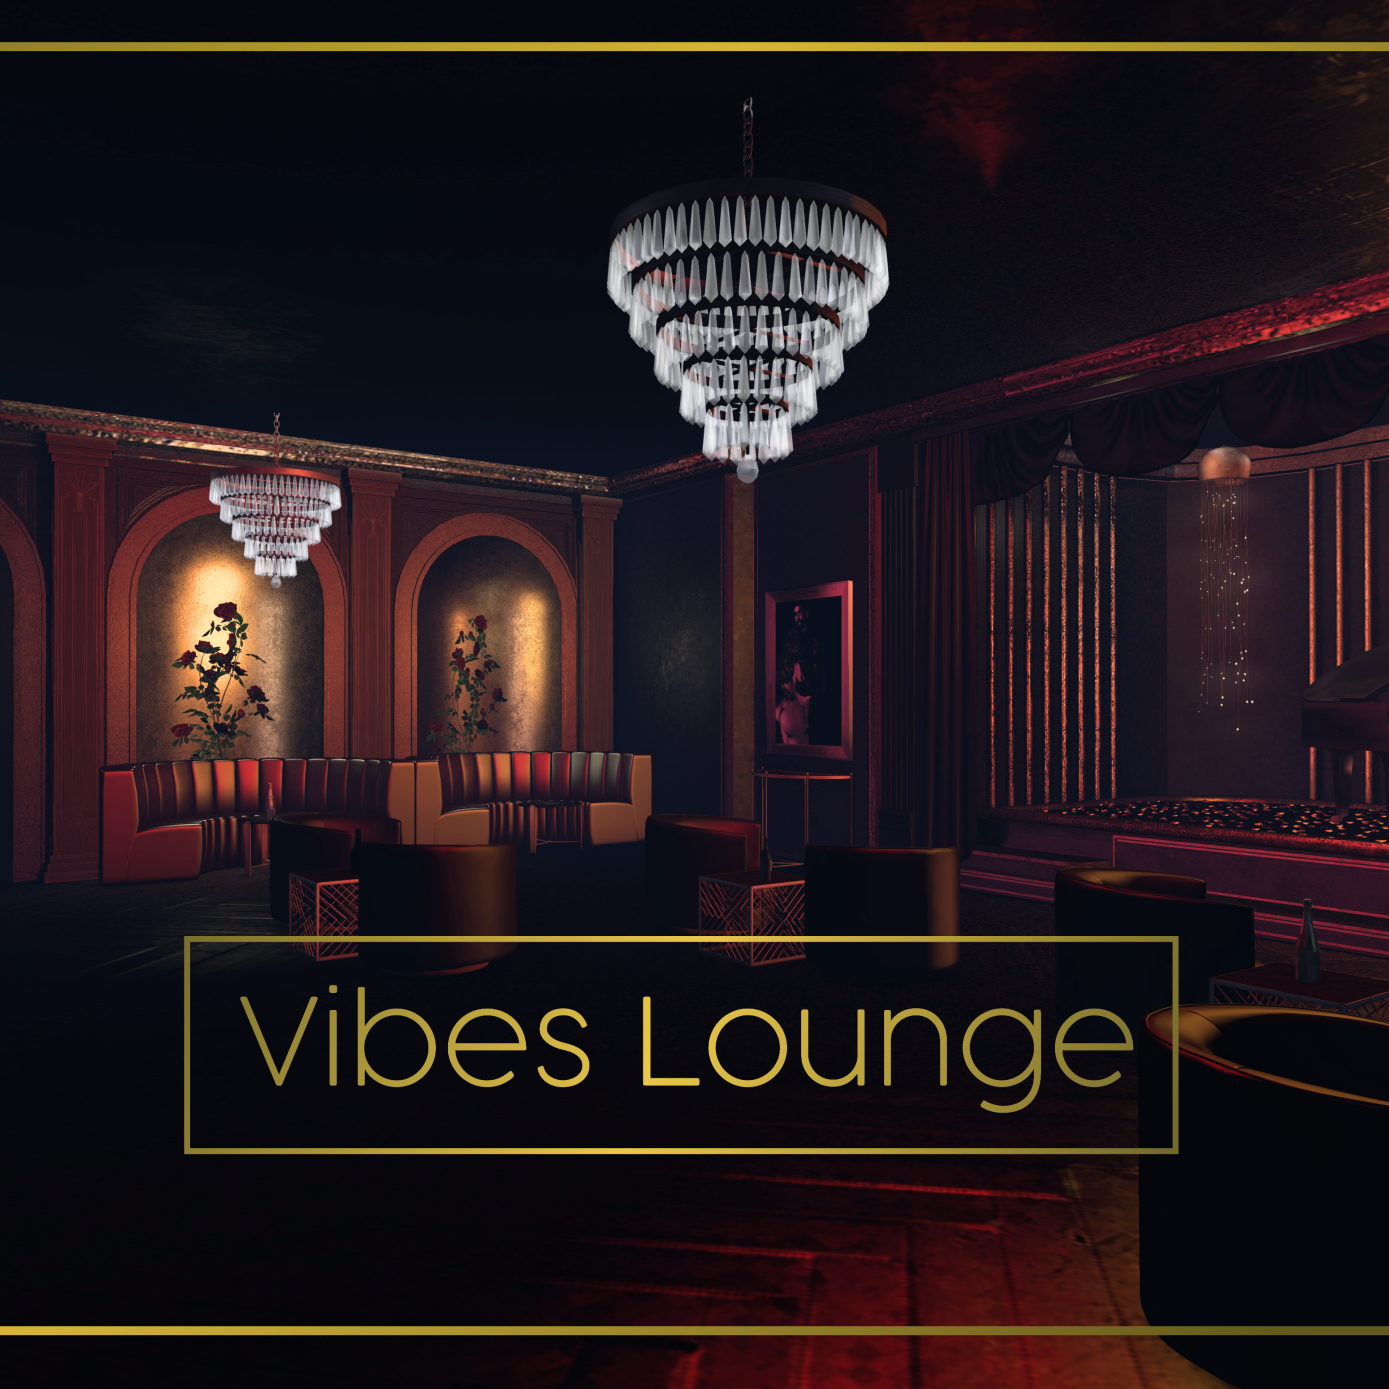 Vibes Lounge